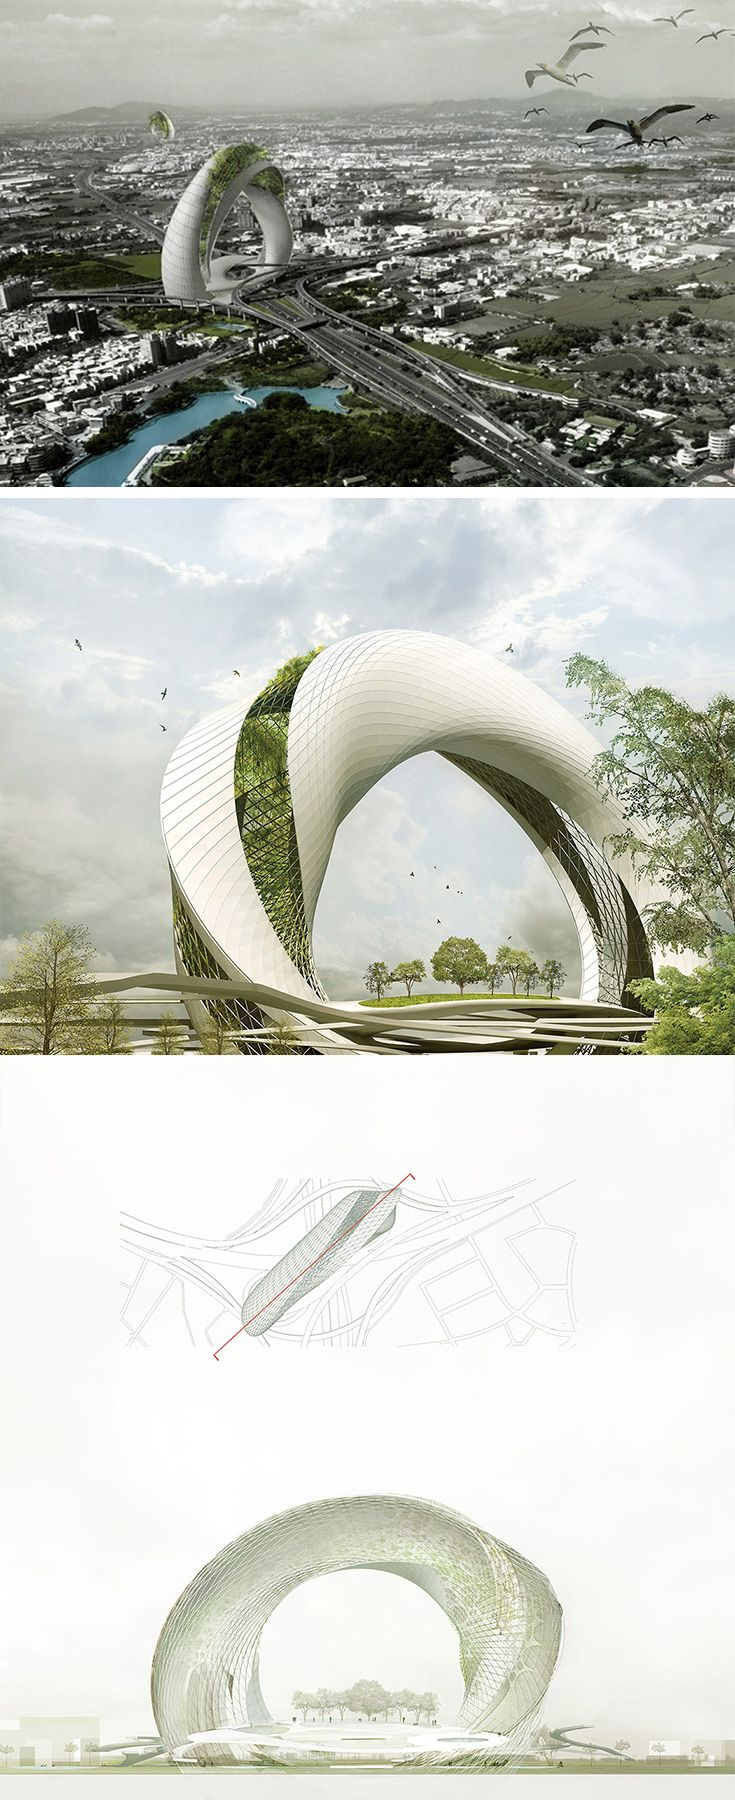 Designed for every major intersection, the Green Circle architectural concept aims to vertically restore space otherwise lost to highways. The twisting structure serves as both an elevated garden and sanctuary for animals like birds which can safely nest without disruption. Each Green Circle is designed to capture usable rainwater and harness solar energy to power an integrated pump system.